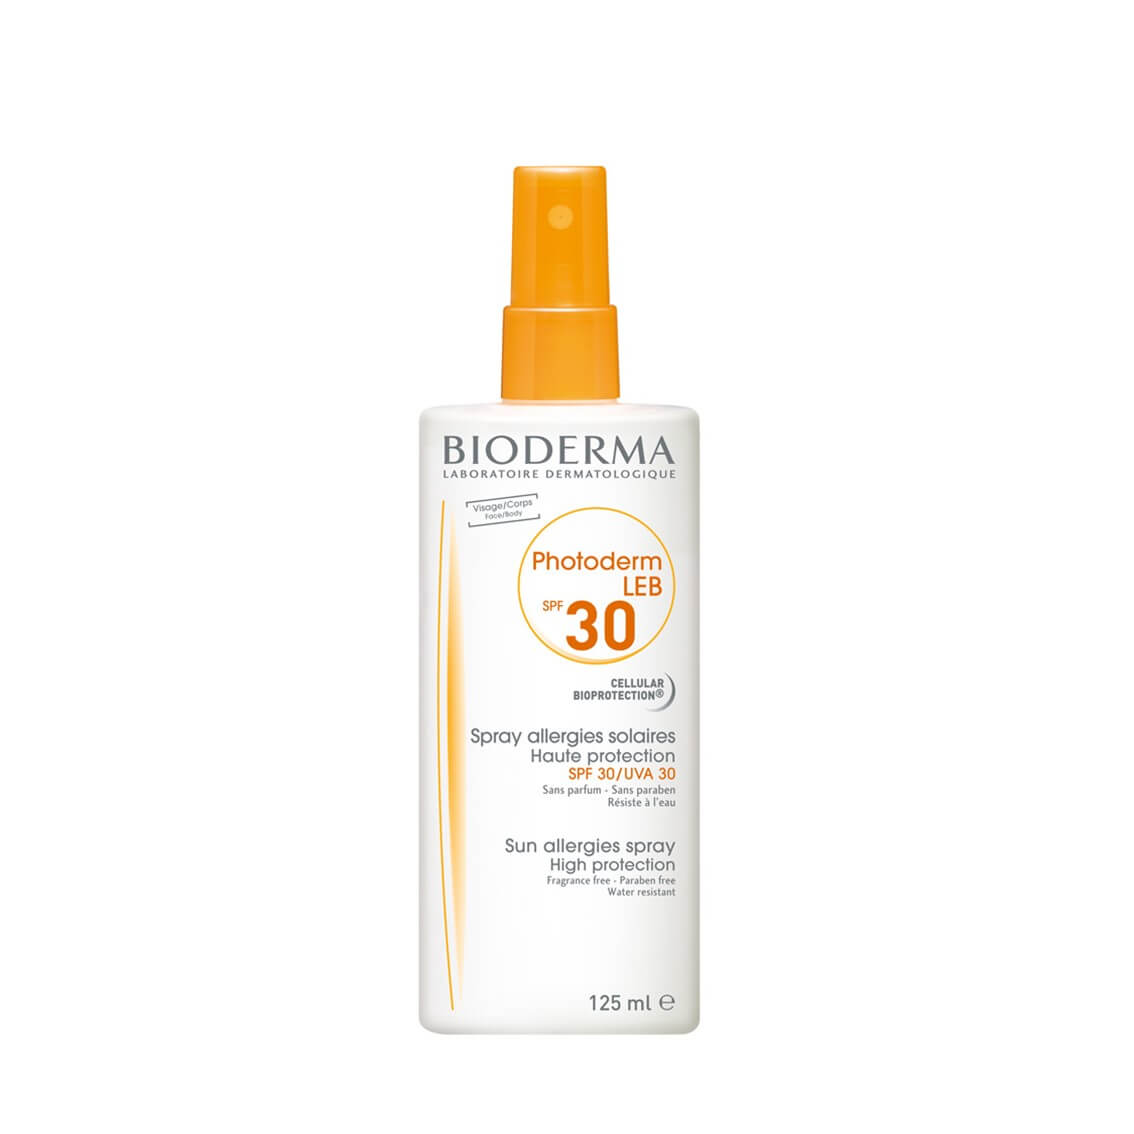 Photoderm LEB Spf30 Alergias Solares 125 ml